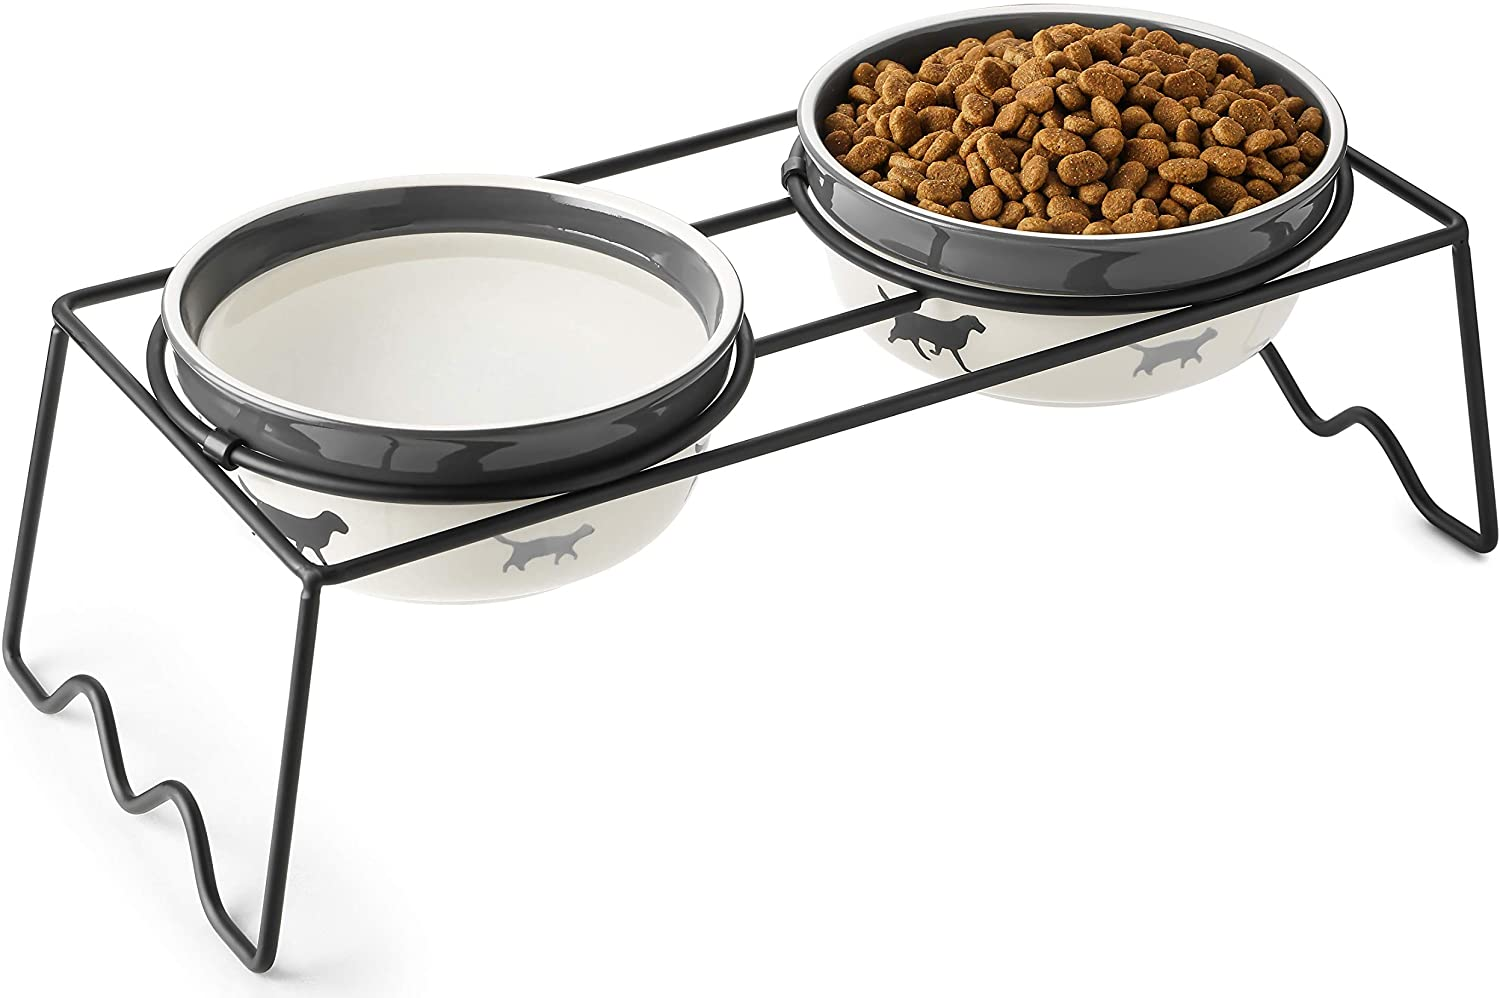 Phoenix Mall Y YHY Elevated National products Dog Bowls Food Raised Water Bowl Do Set and